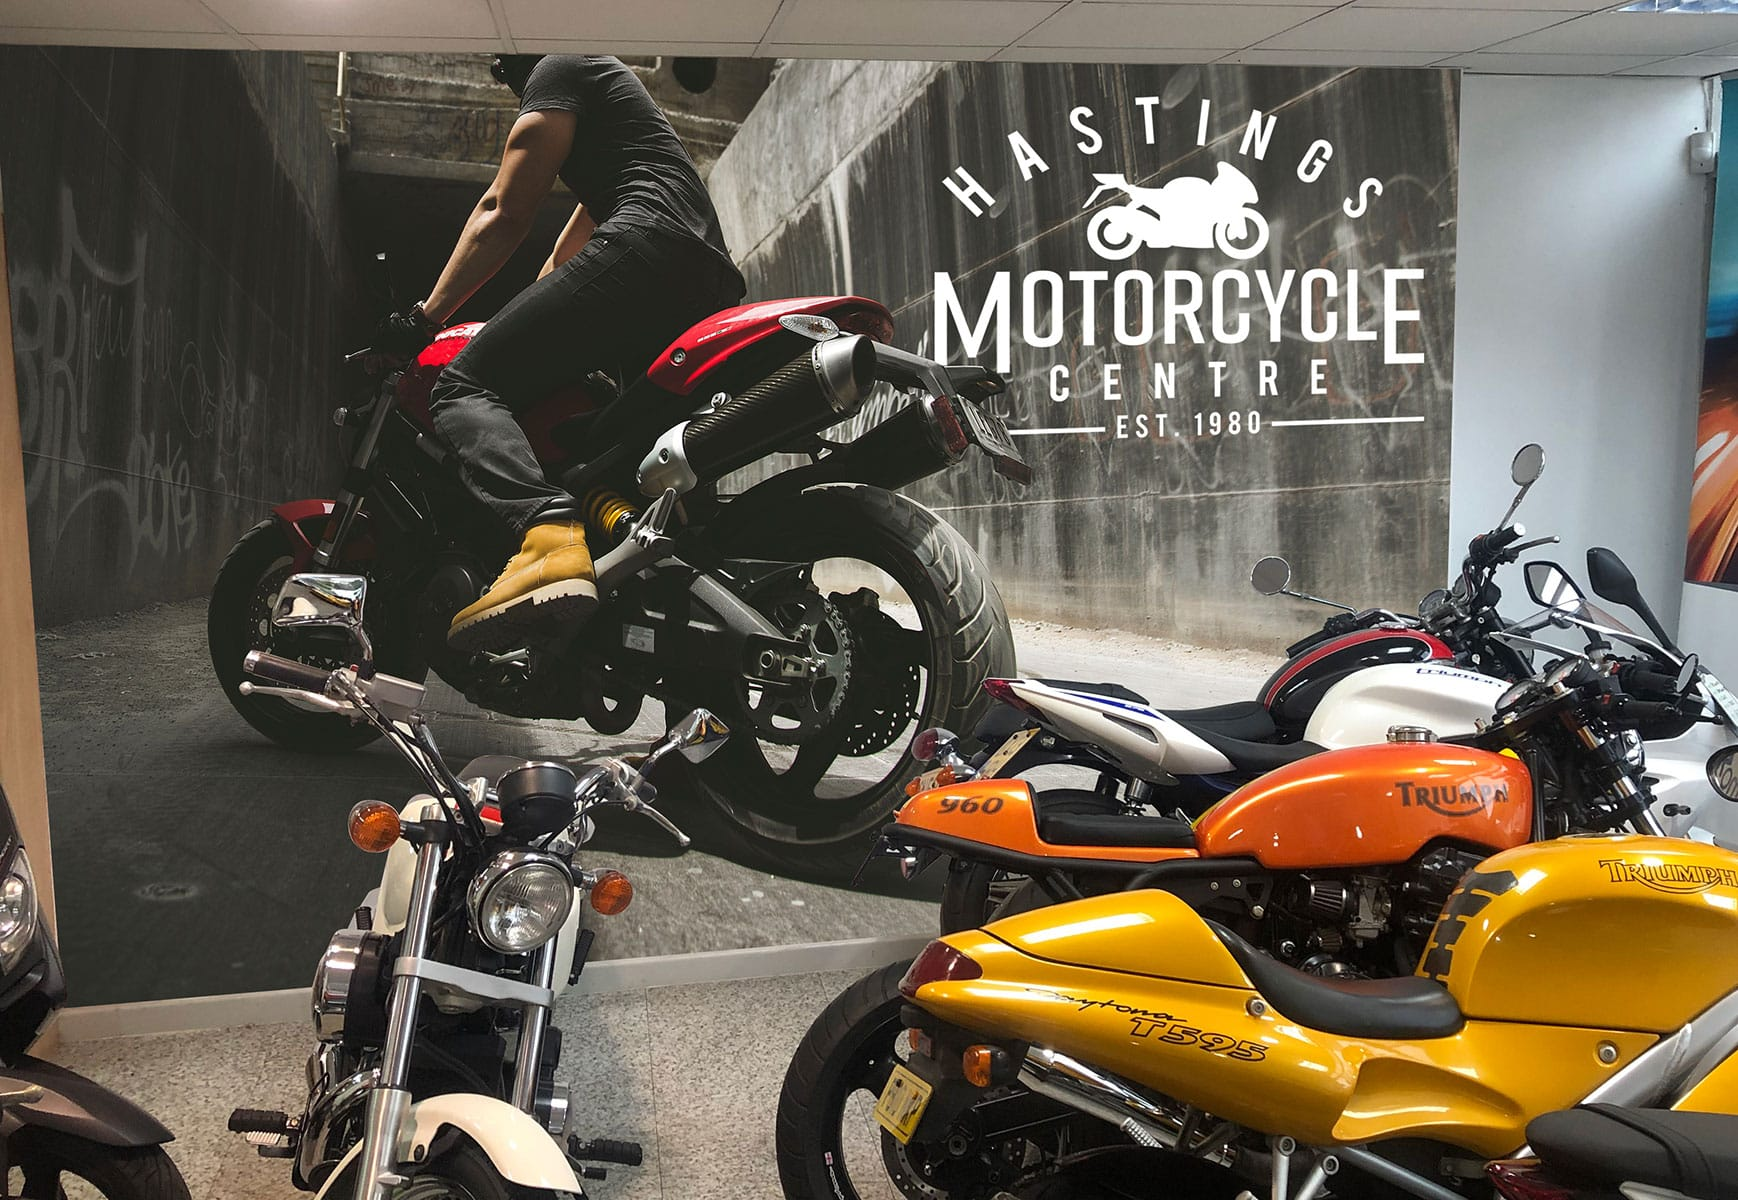 Hastings Motorcycle Centre